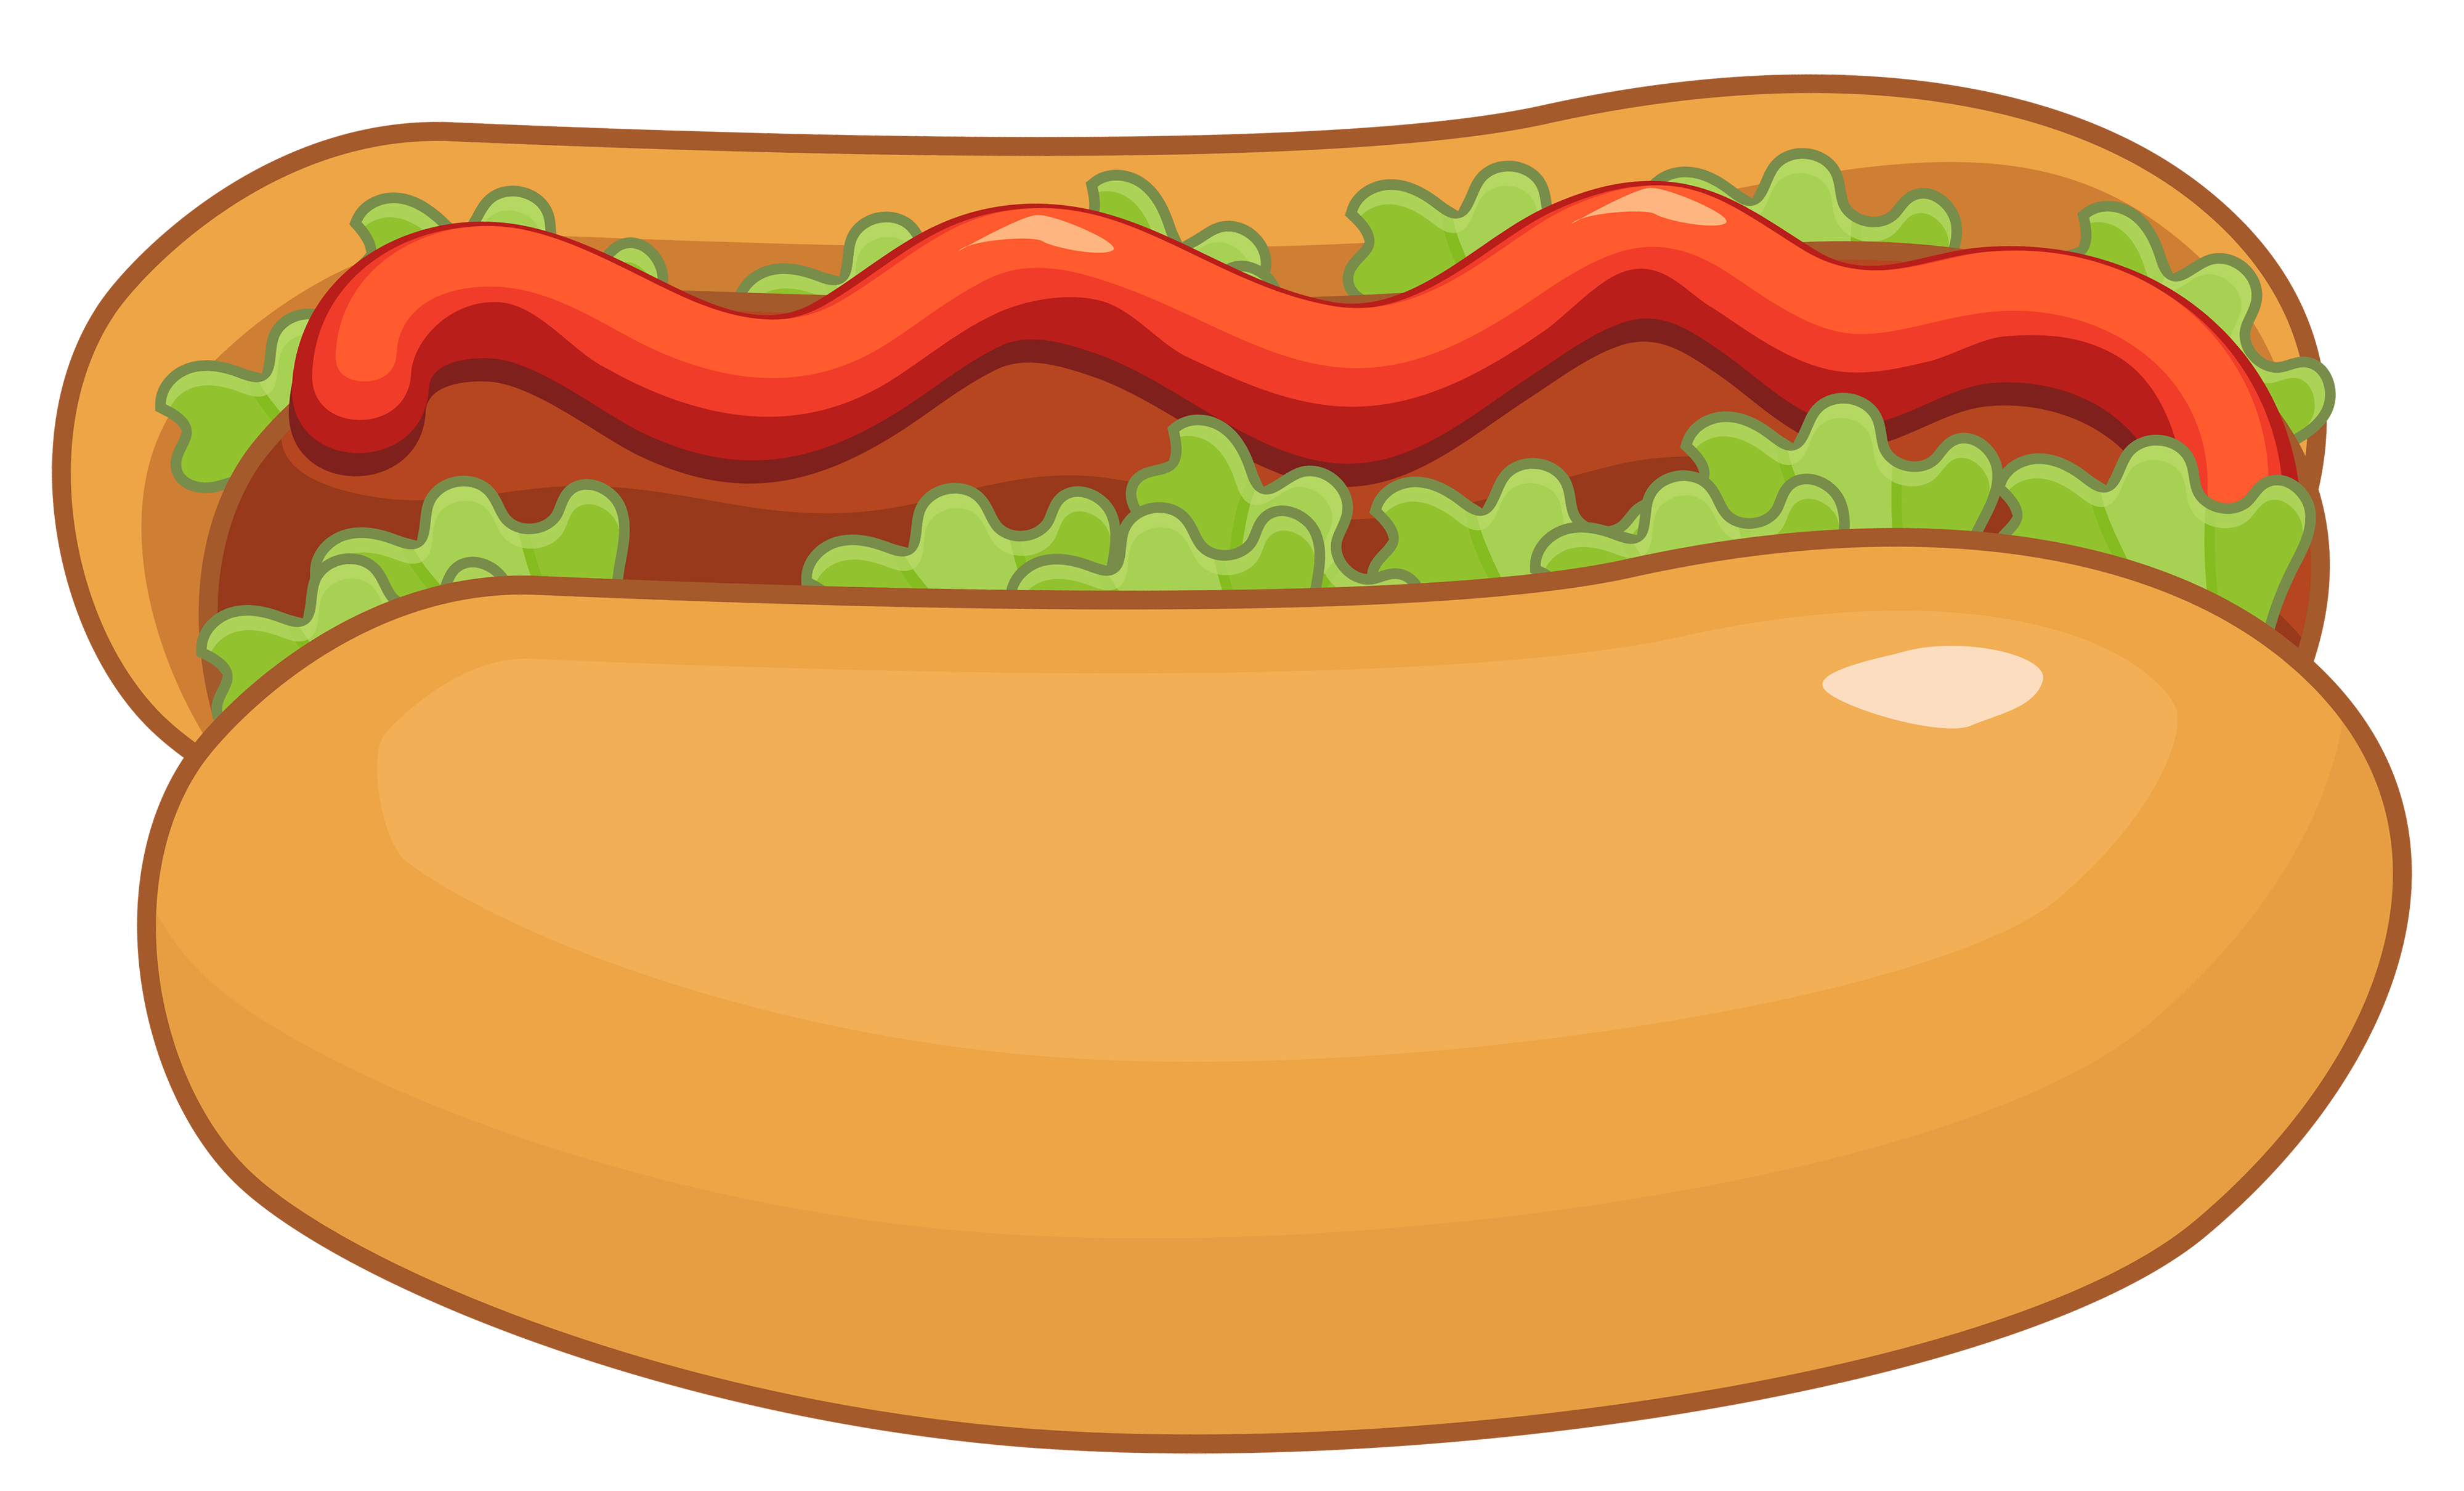 Hot dog png best. Heat clipart extreme heat